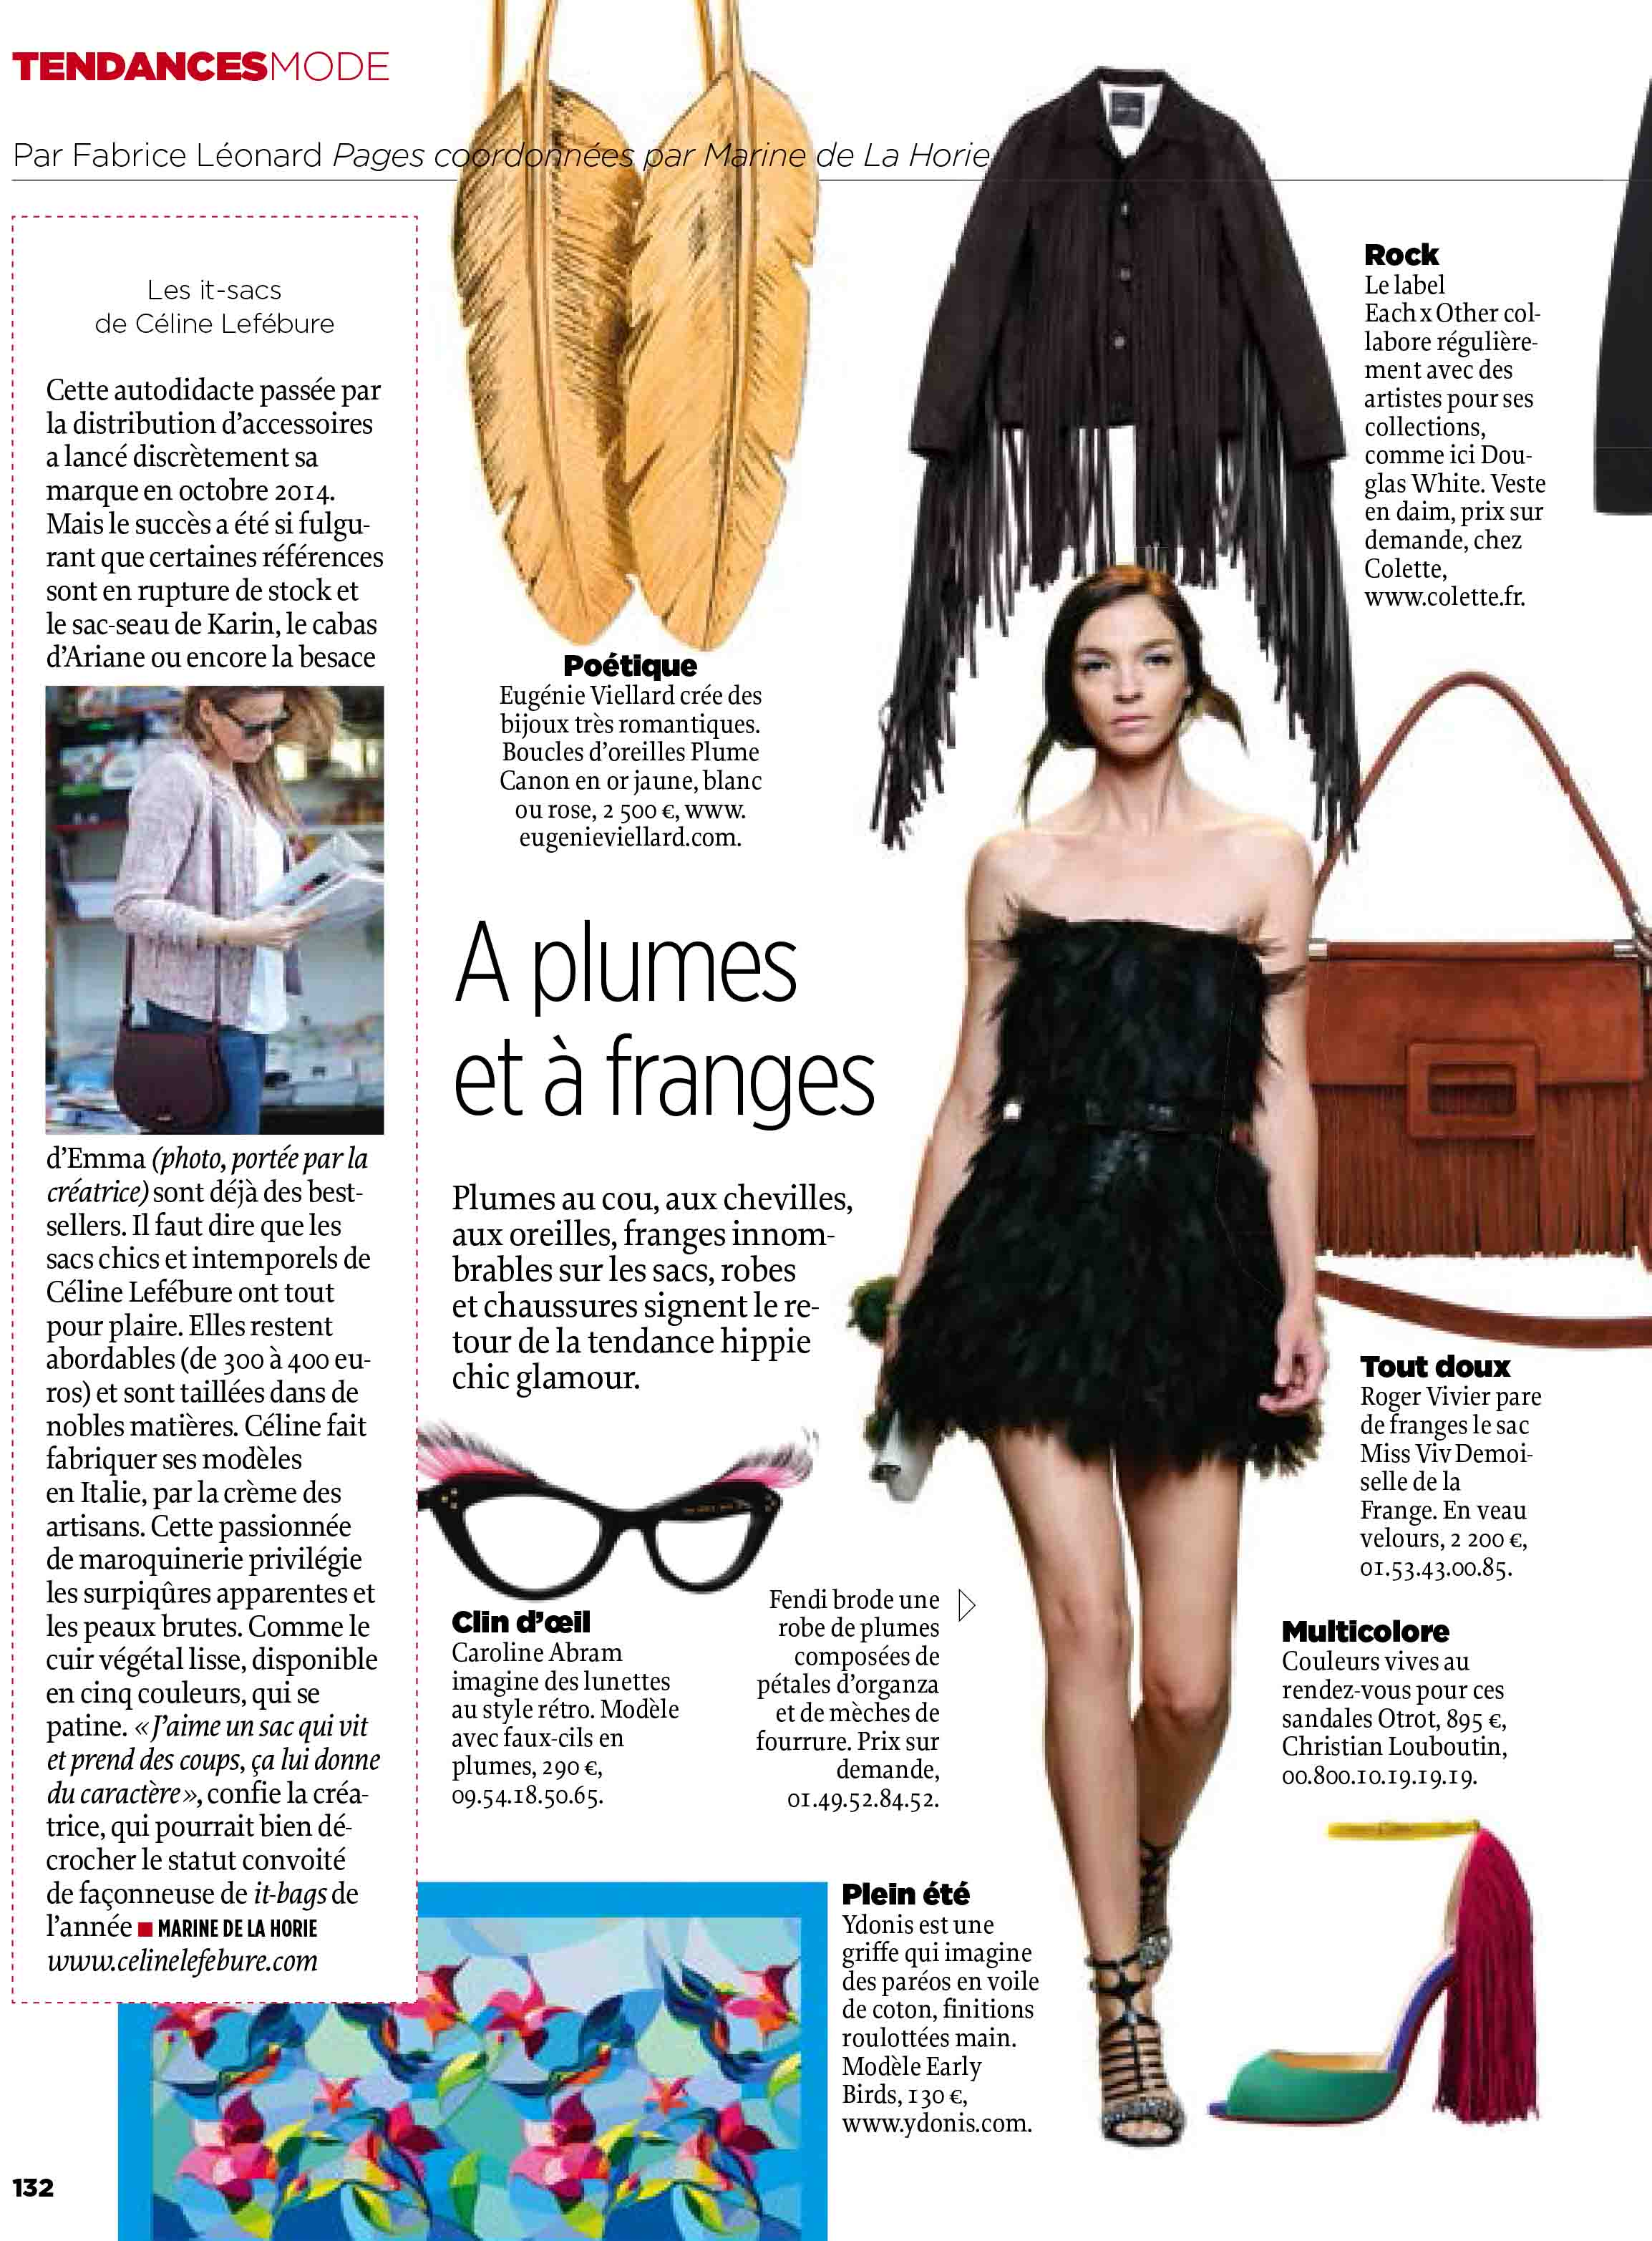 Le Point June 2015 - Fashion and style